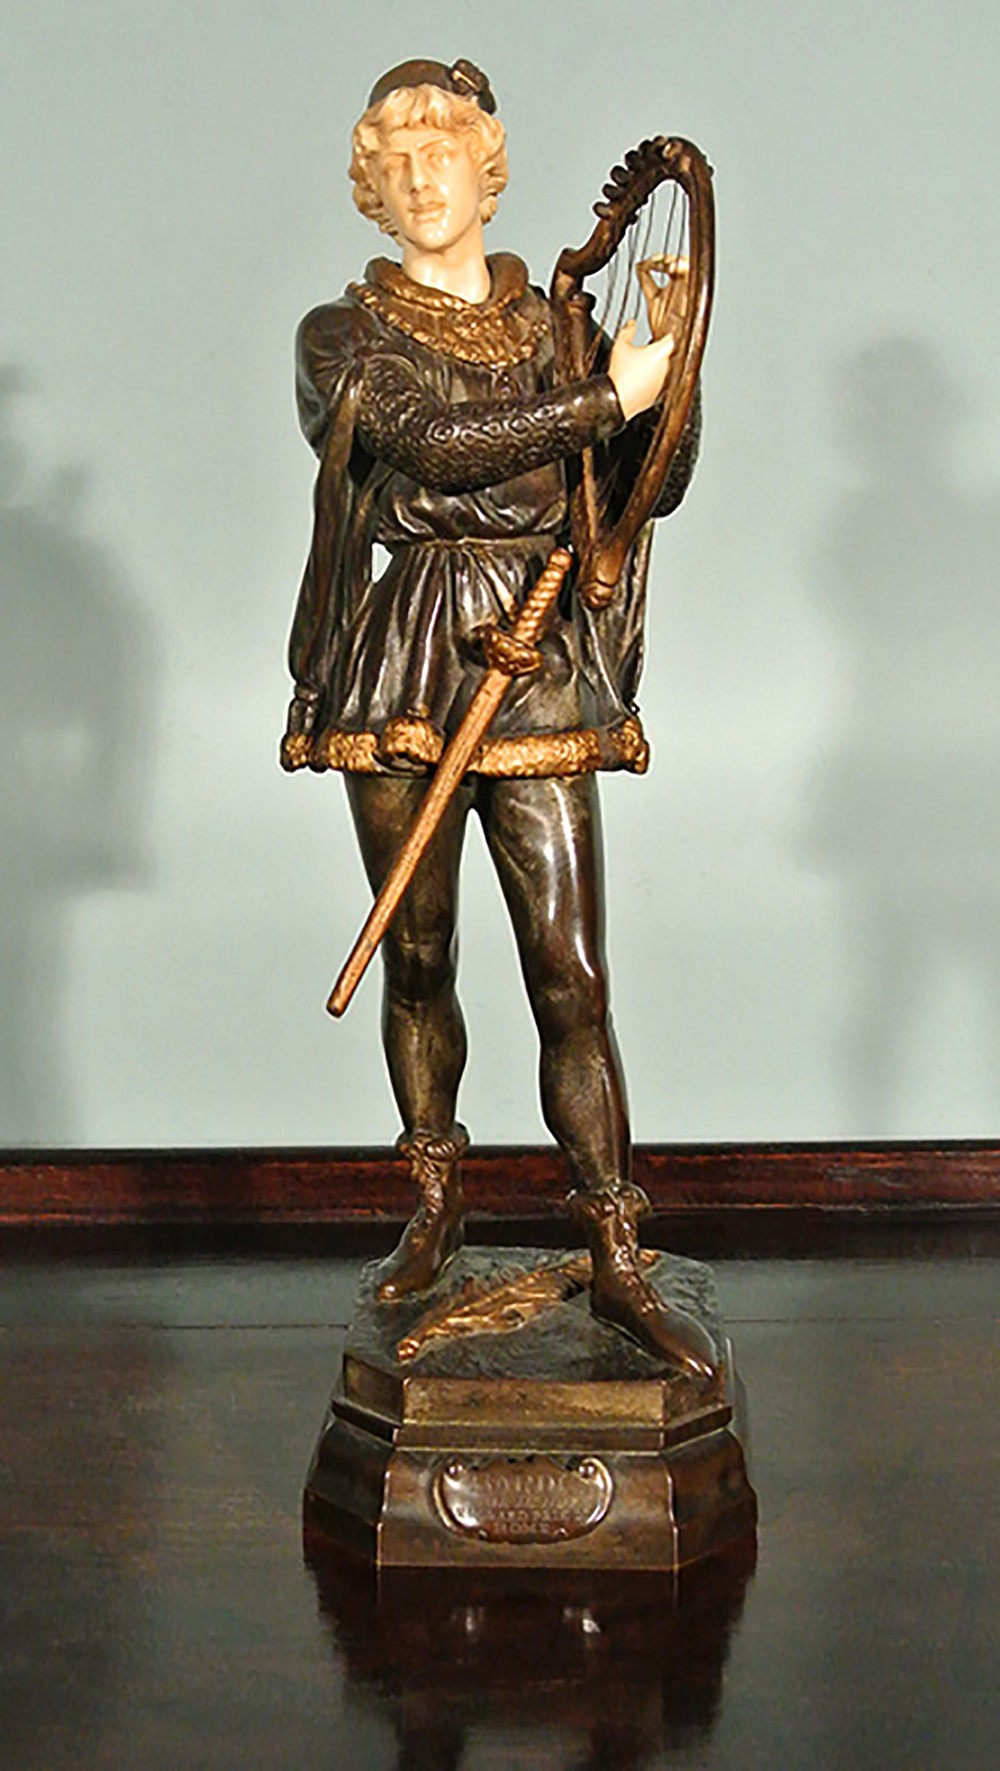 Jean didier debut bronze and ivory figure titled barde